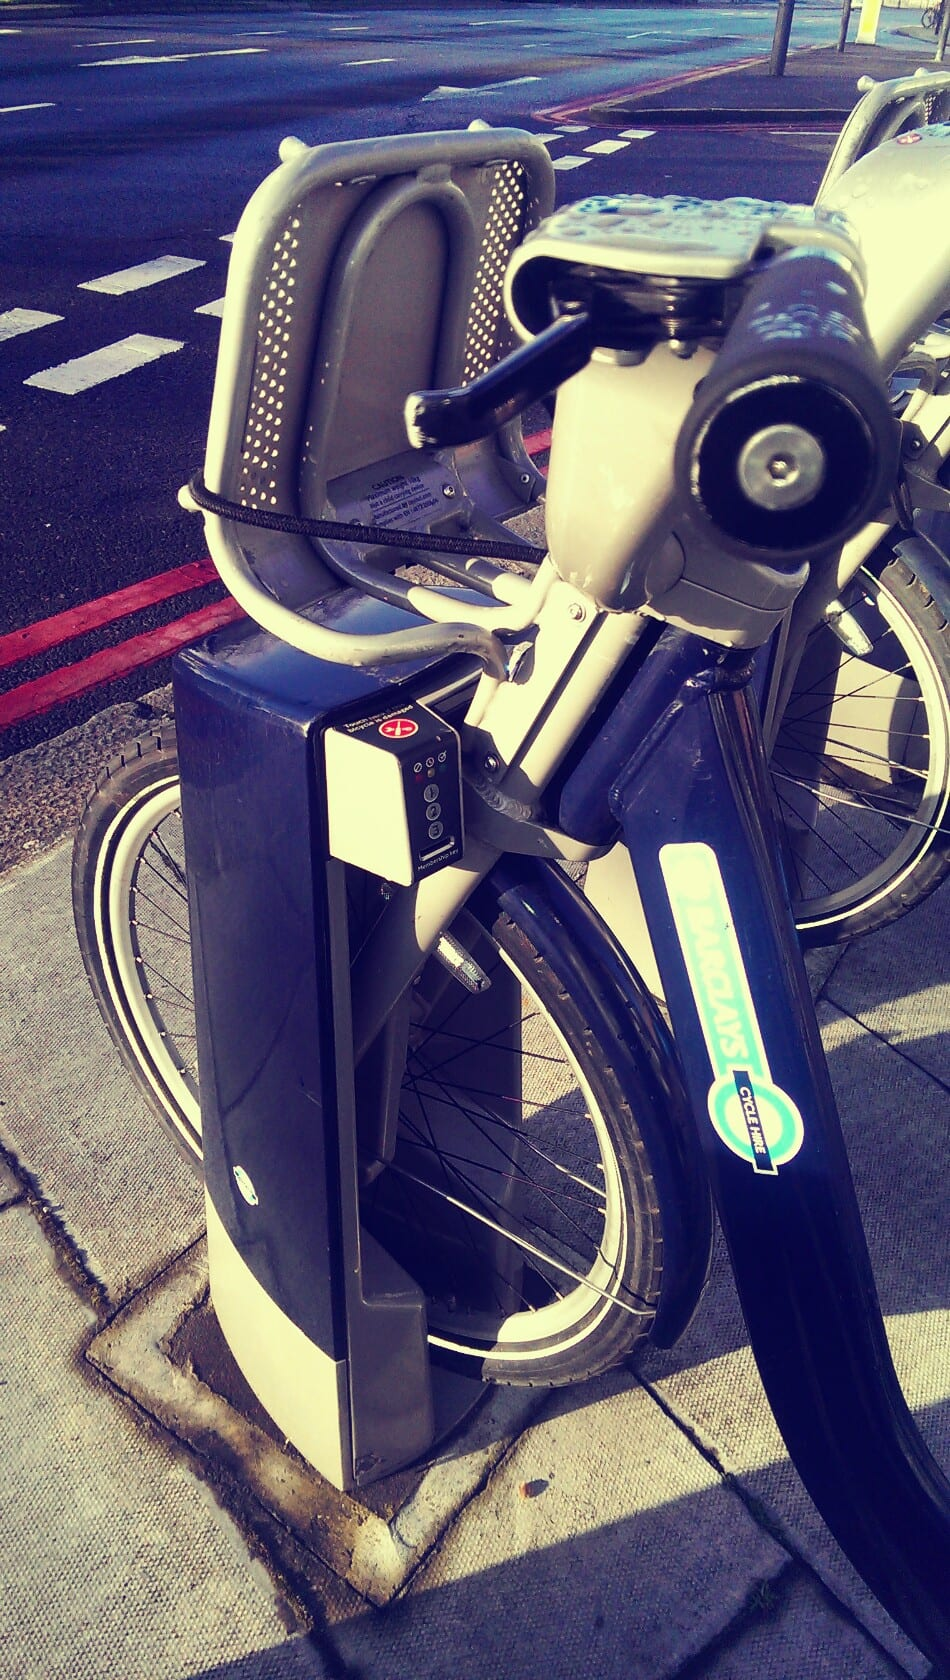 Barclays Bike Hire